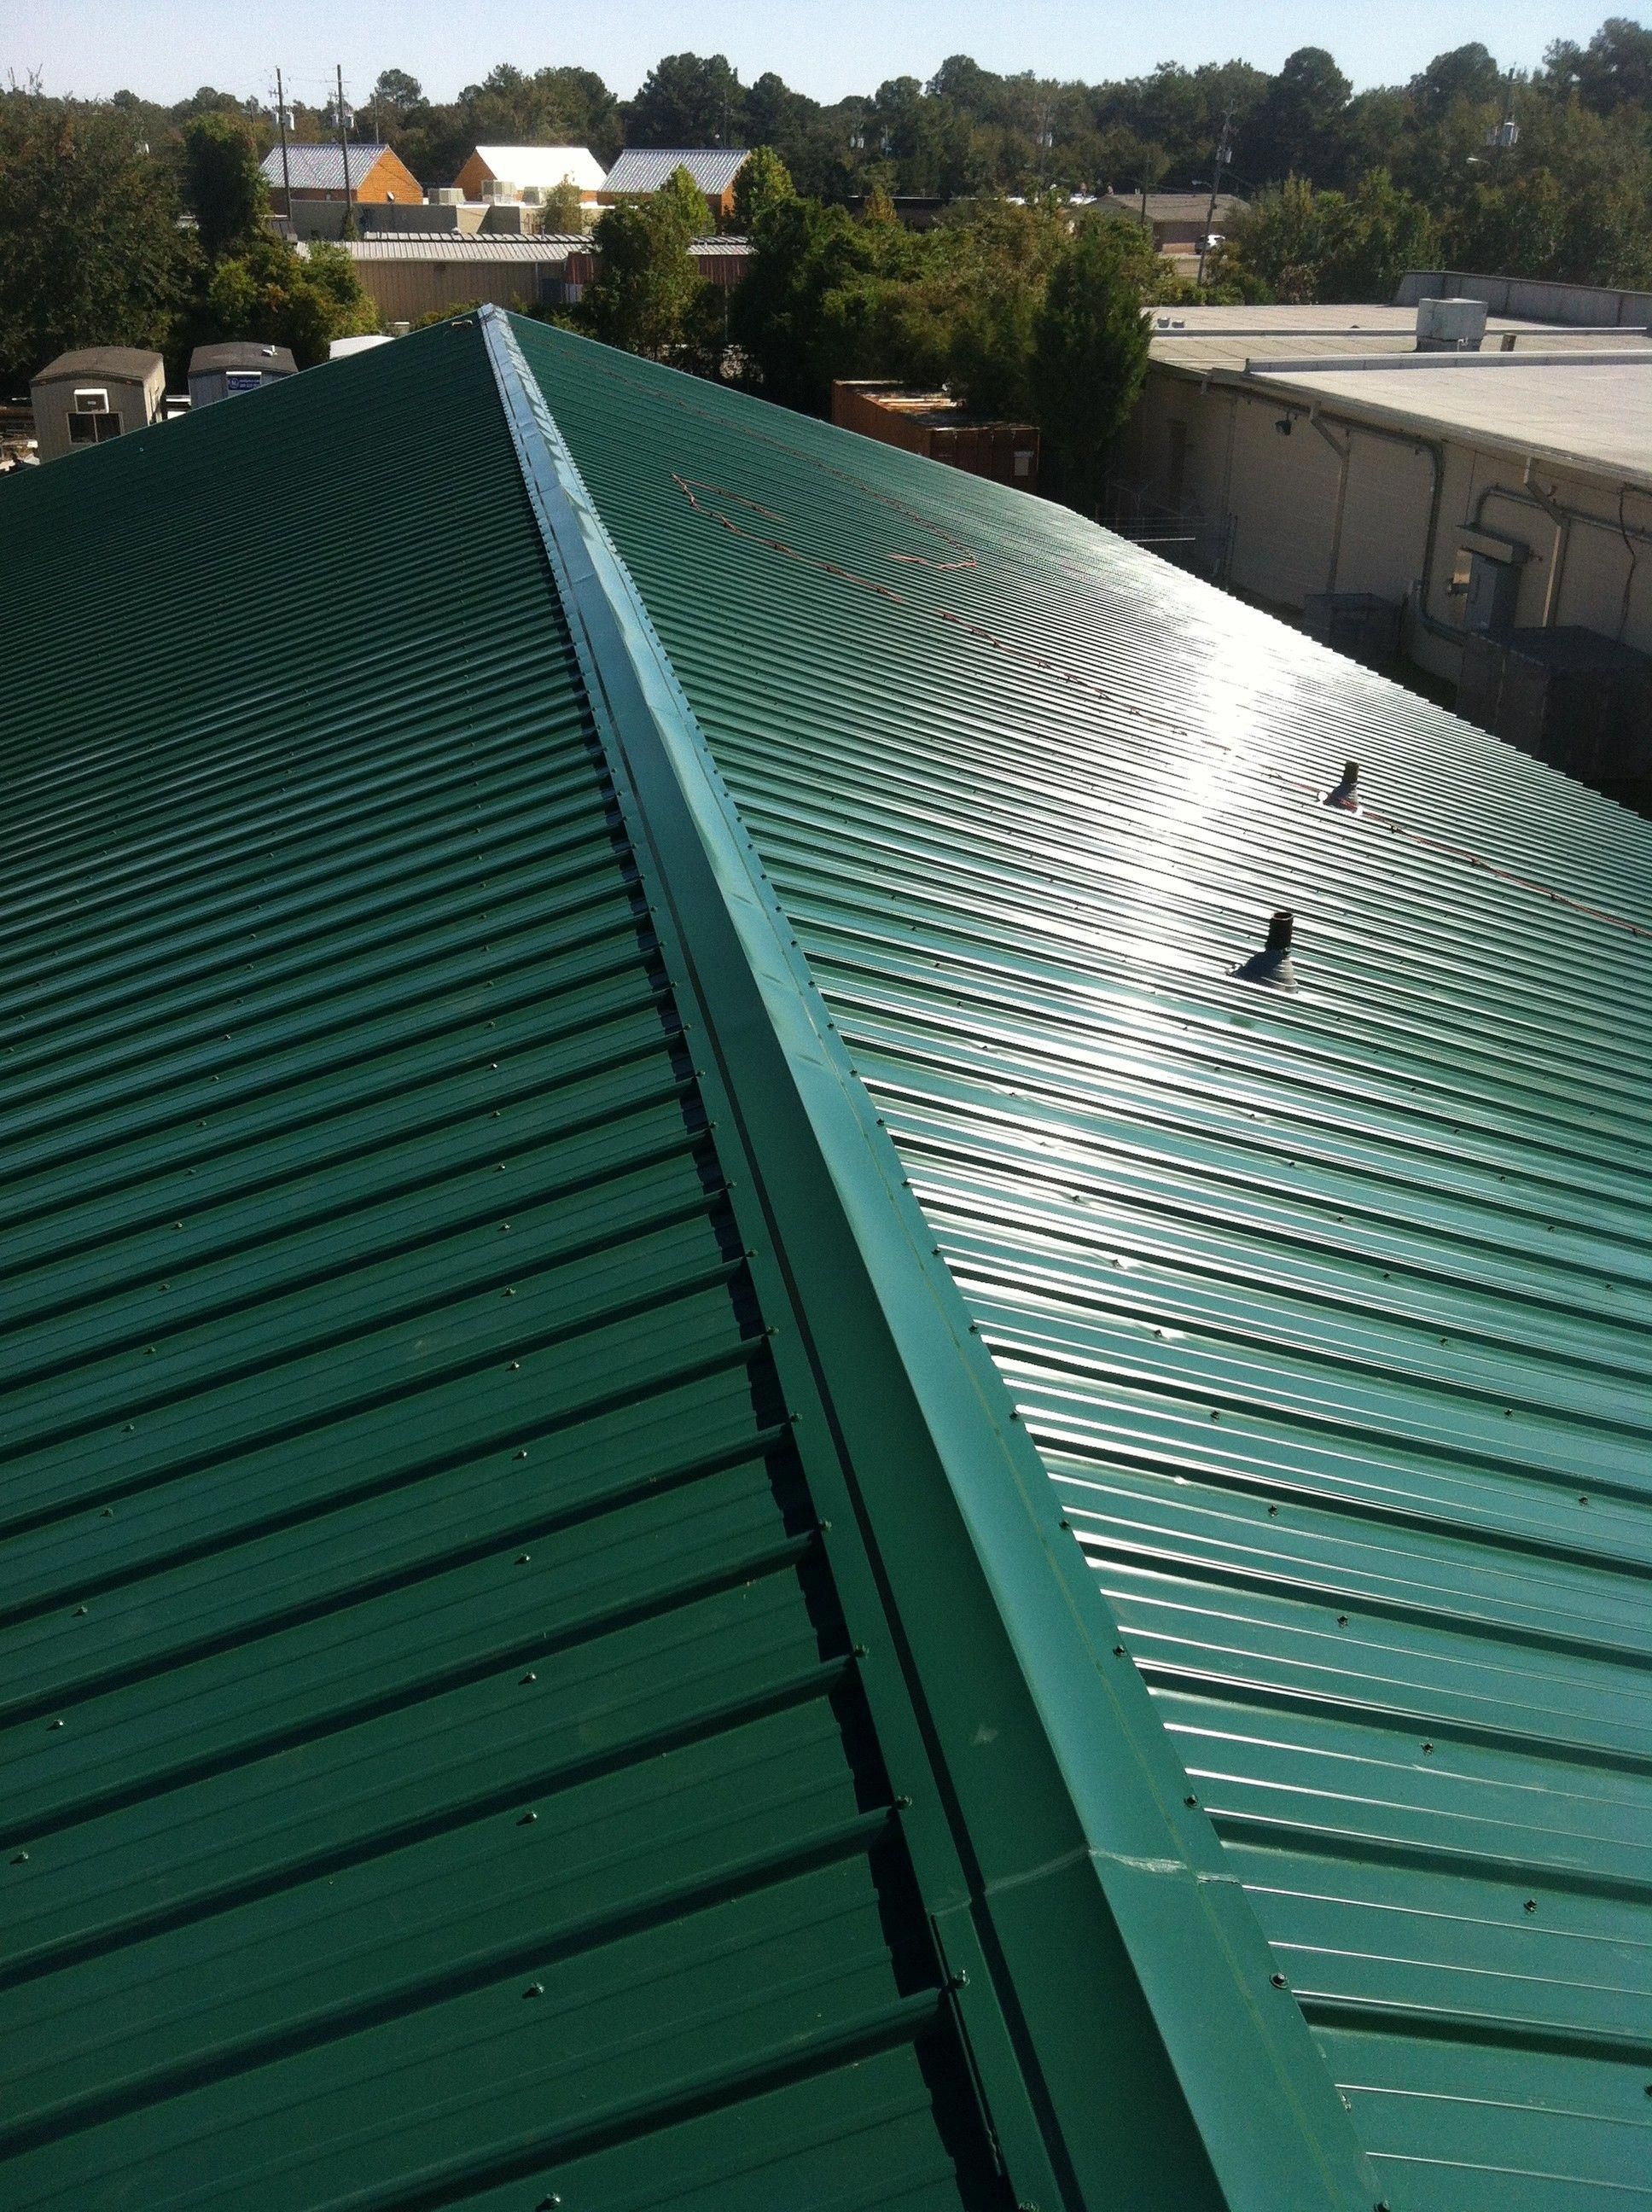 Ideas Pictures Of Metal Roofs On Mobile Homes Pictures Of Metal Roofs On Mobile Homes Tin Roof For Mobile Home Roof Metal Roof Roofing Metal Roofing Materials